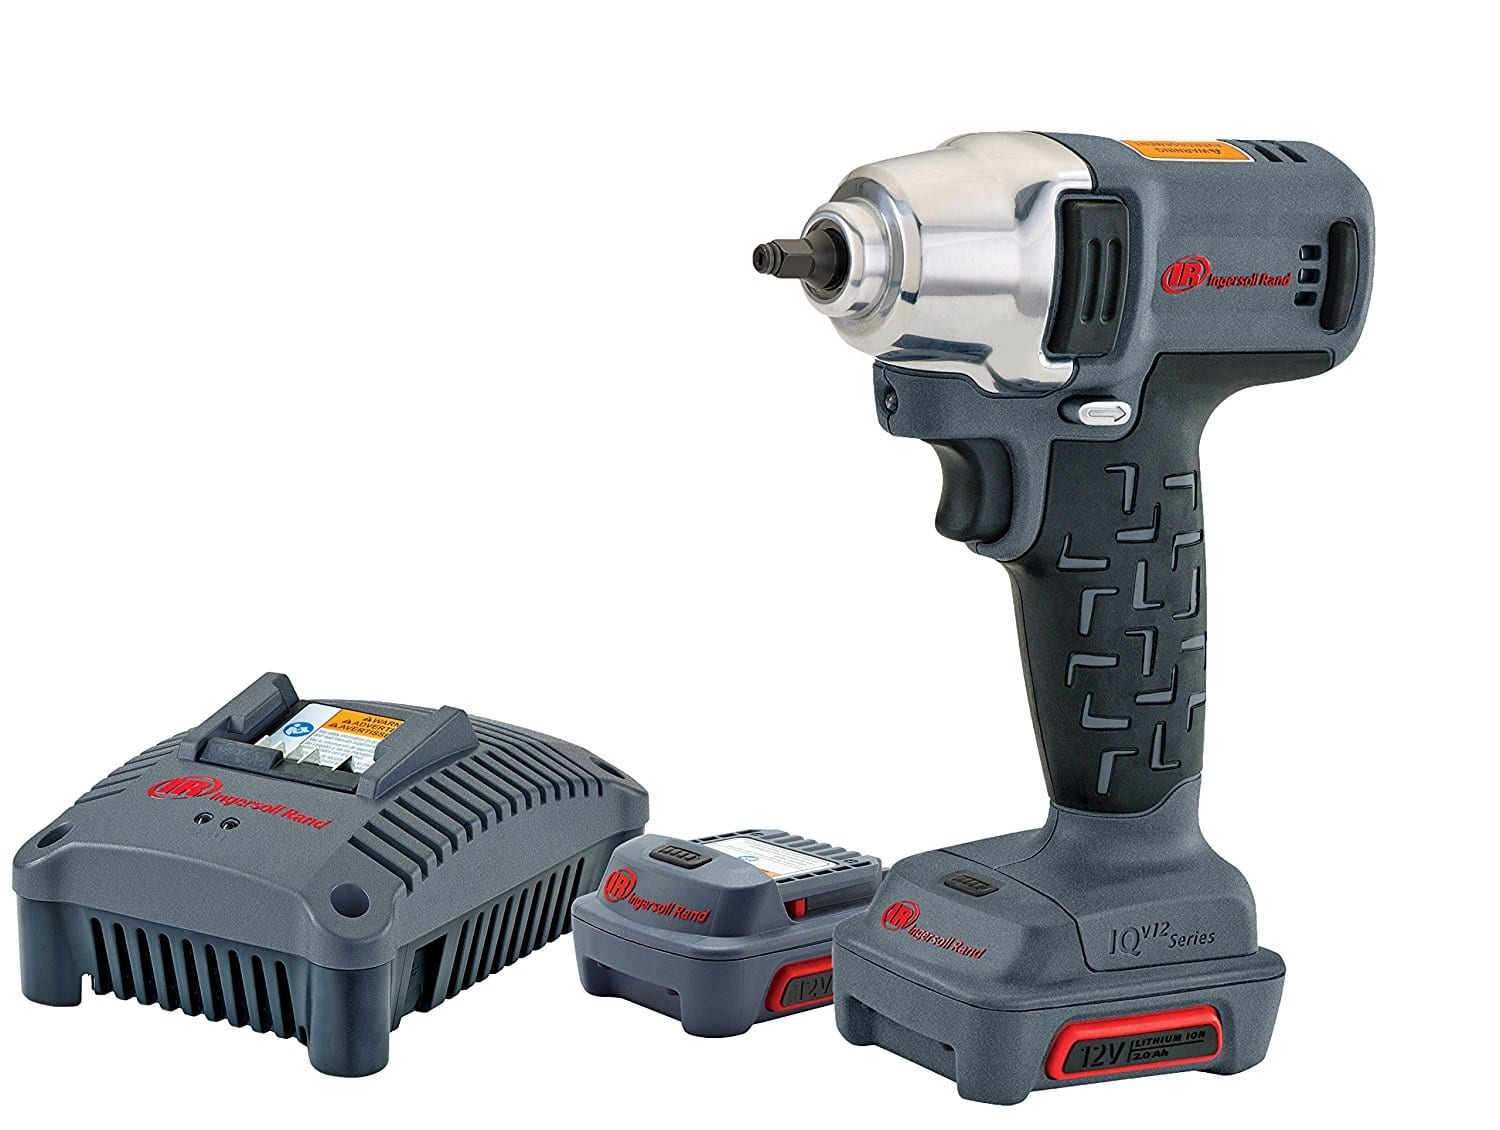 """Ingersoll Rand W1120-K2 1/4"""" 12V Impact Wrench Kit AT Costco $49.97."""